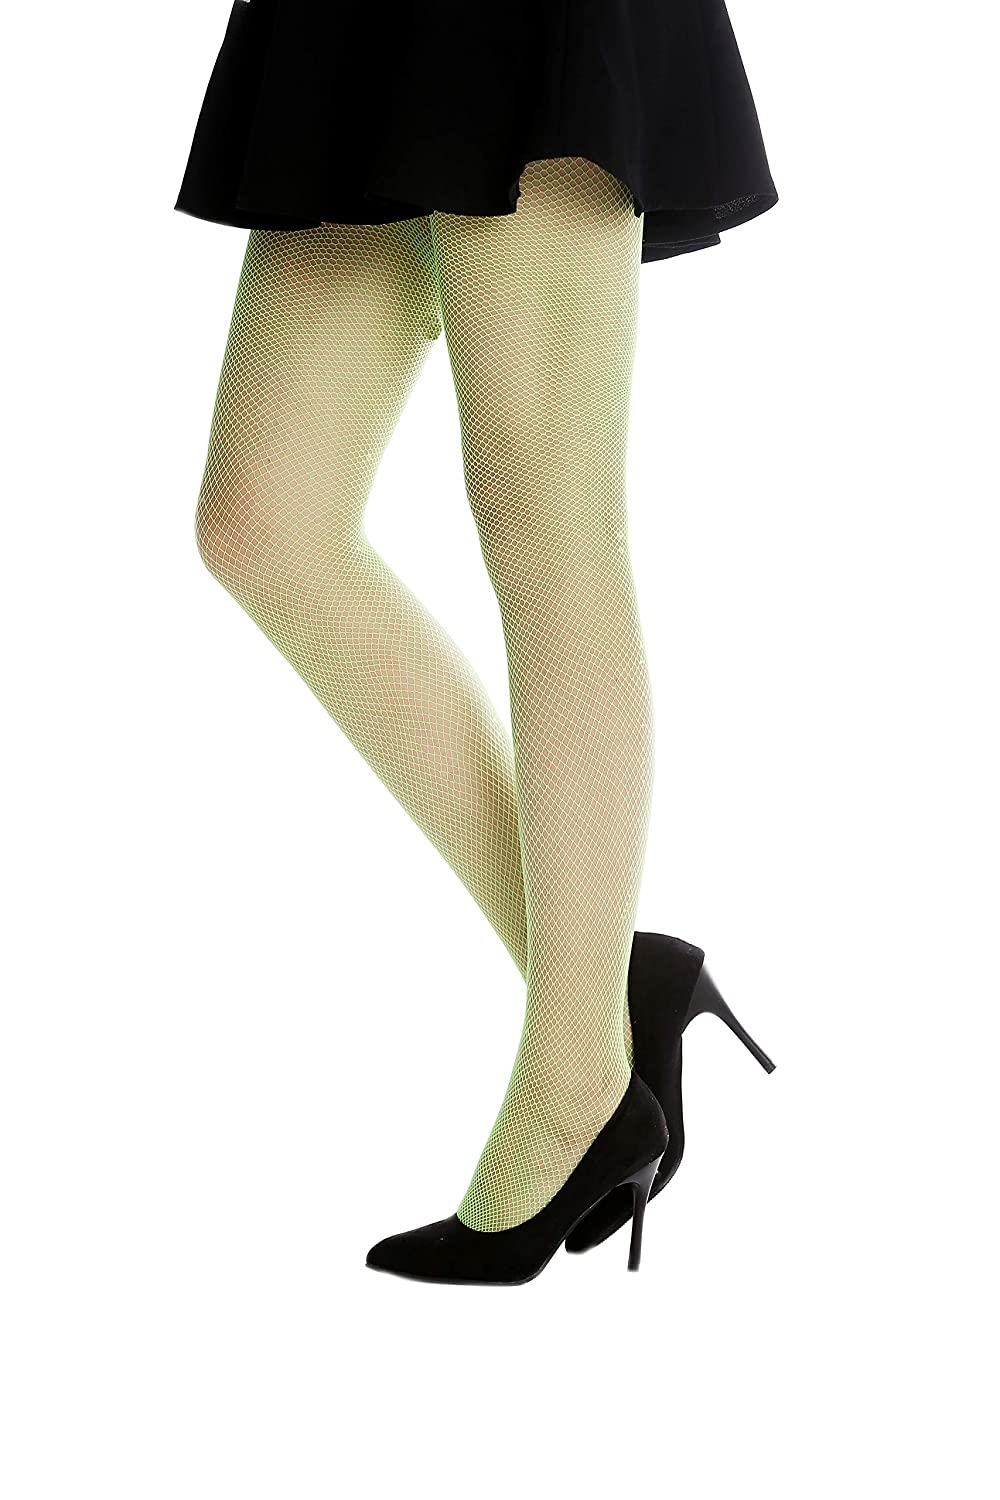 20bc9921a0c63 DRESS ME UP - W-020B-green Pantyhose Tights fishnet Lady Costume Halloween  elastic bright red fairy S/M: Amazon.co.uk: Toys & Games